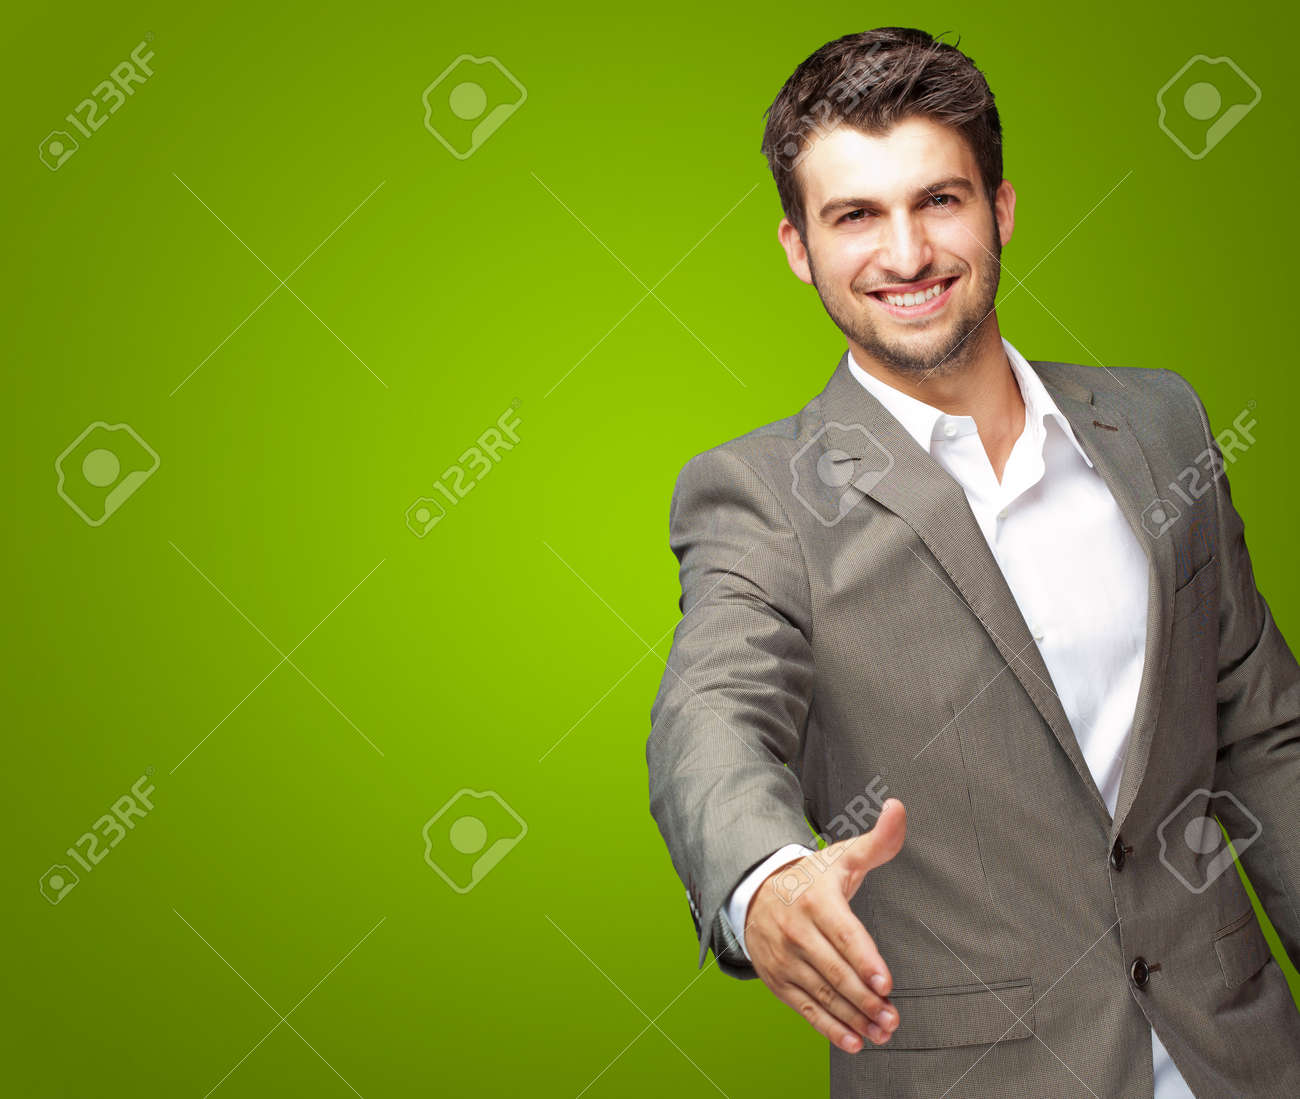 Portrait Of Young Businessman In A Suit Holds Out His Hand For A Handshake On Green Background - 16690492